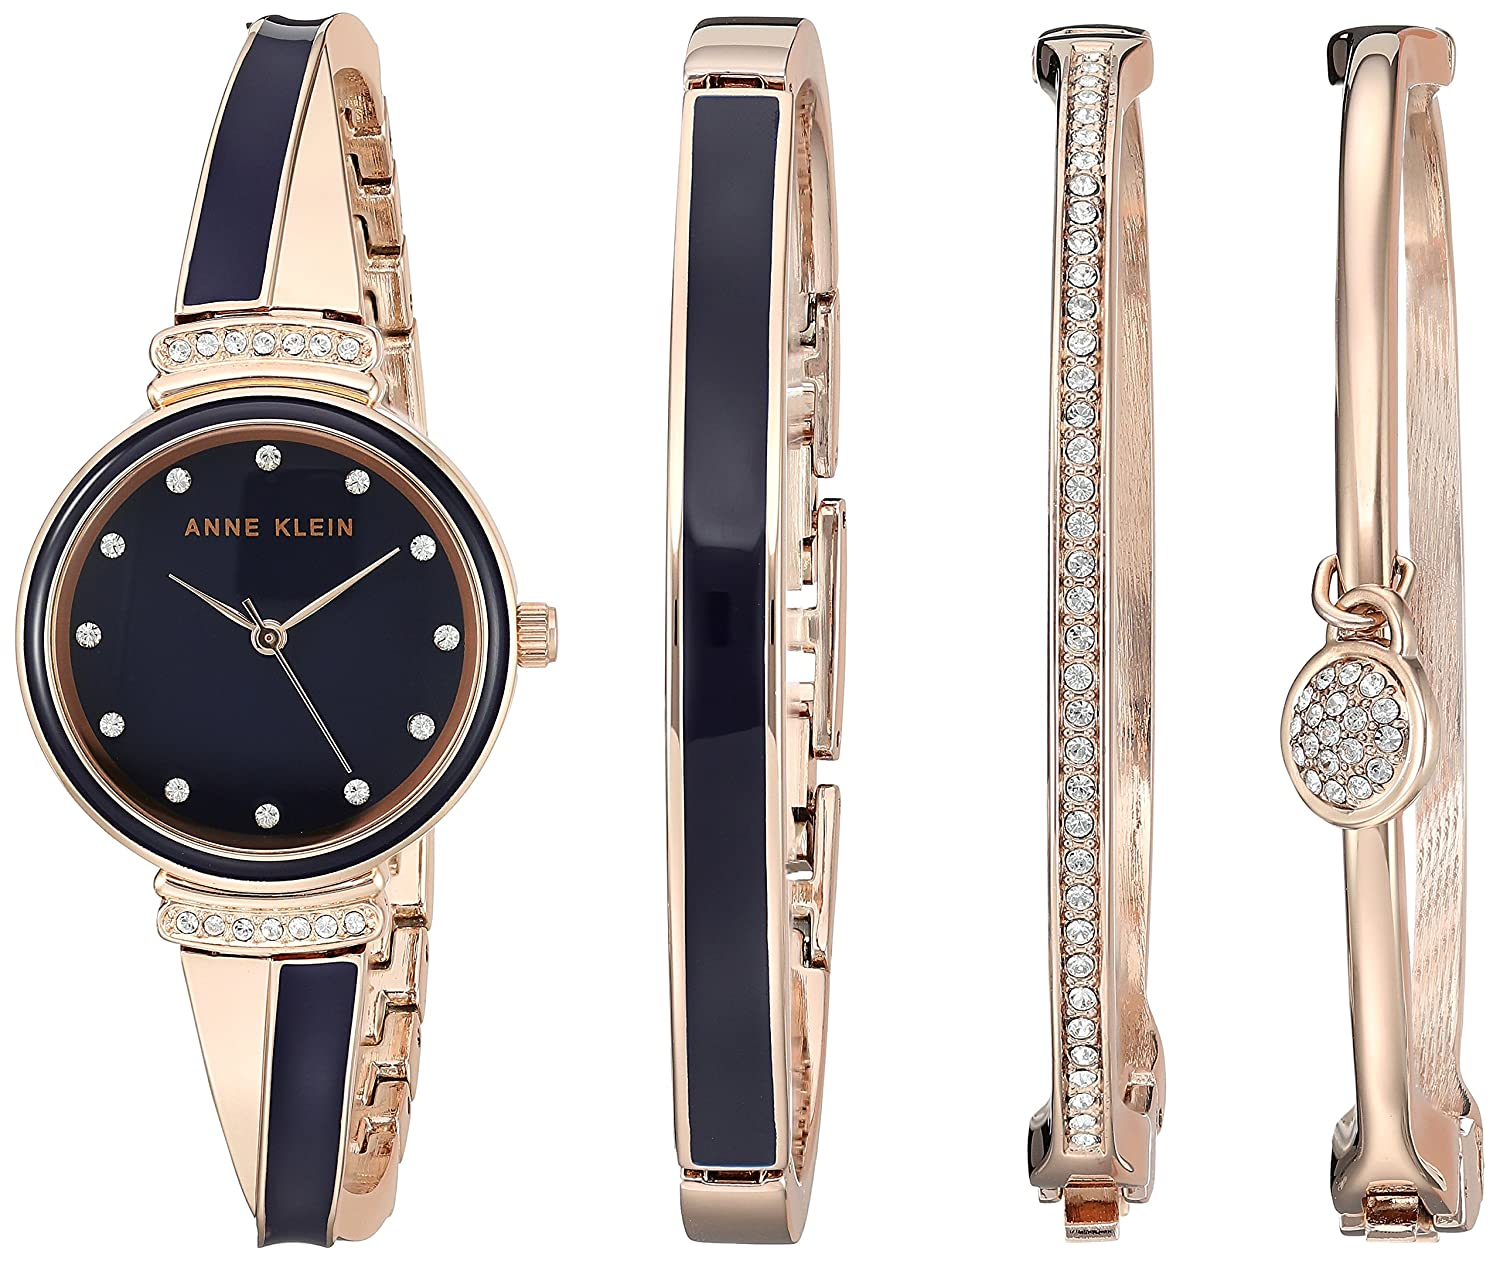 Daily Deals: 50 off at Anne Klein, 50 off at Revolve Clothing Daily Deals: 50 off at Anne Klein, 50 off at Revolve Clothing new picture